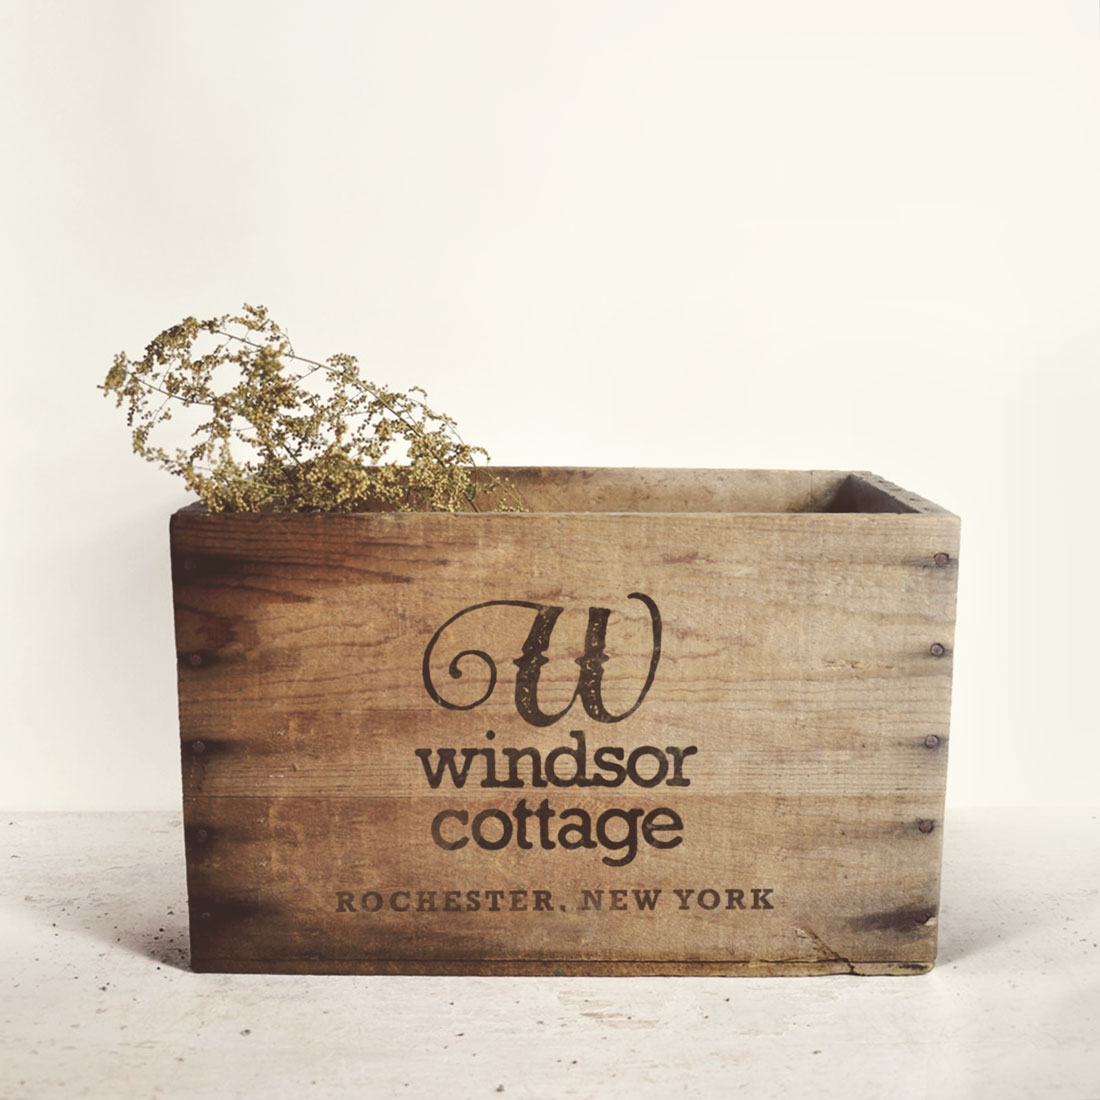 Photo of Windsor Cottage vintage box with logo and Rochester, New York type